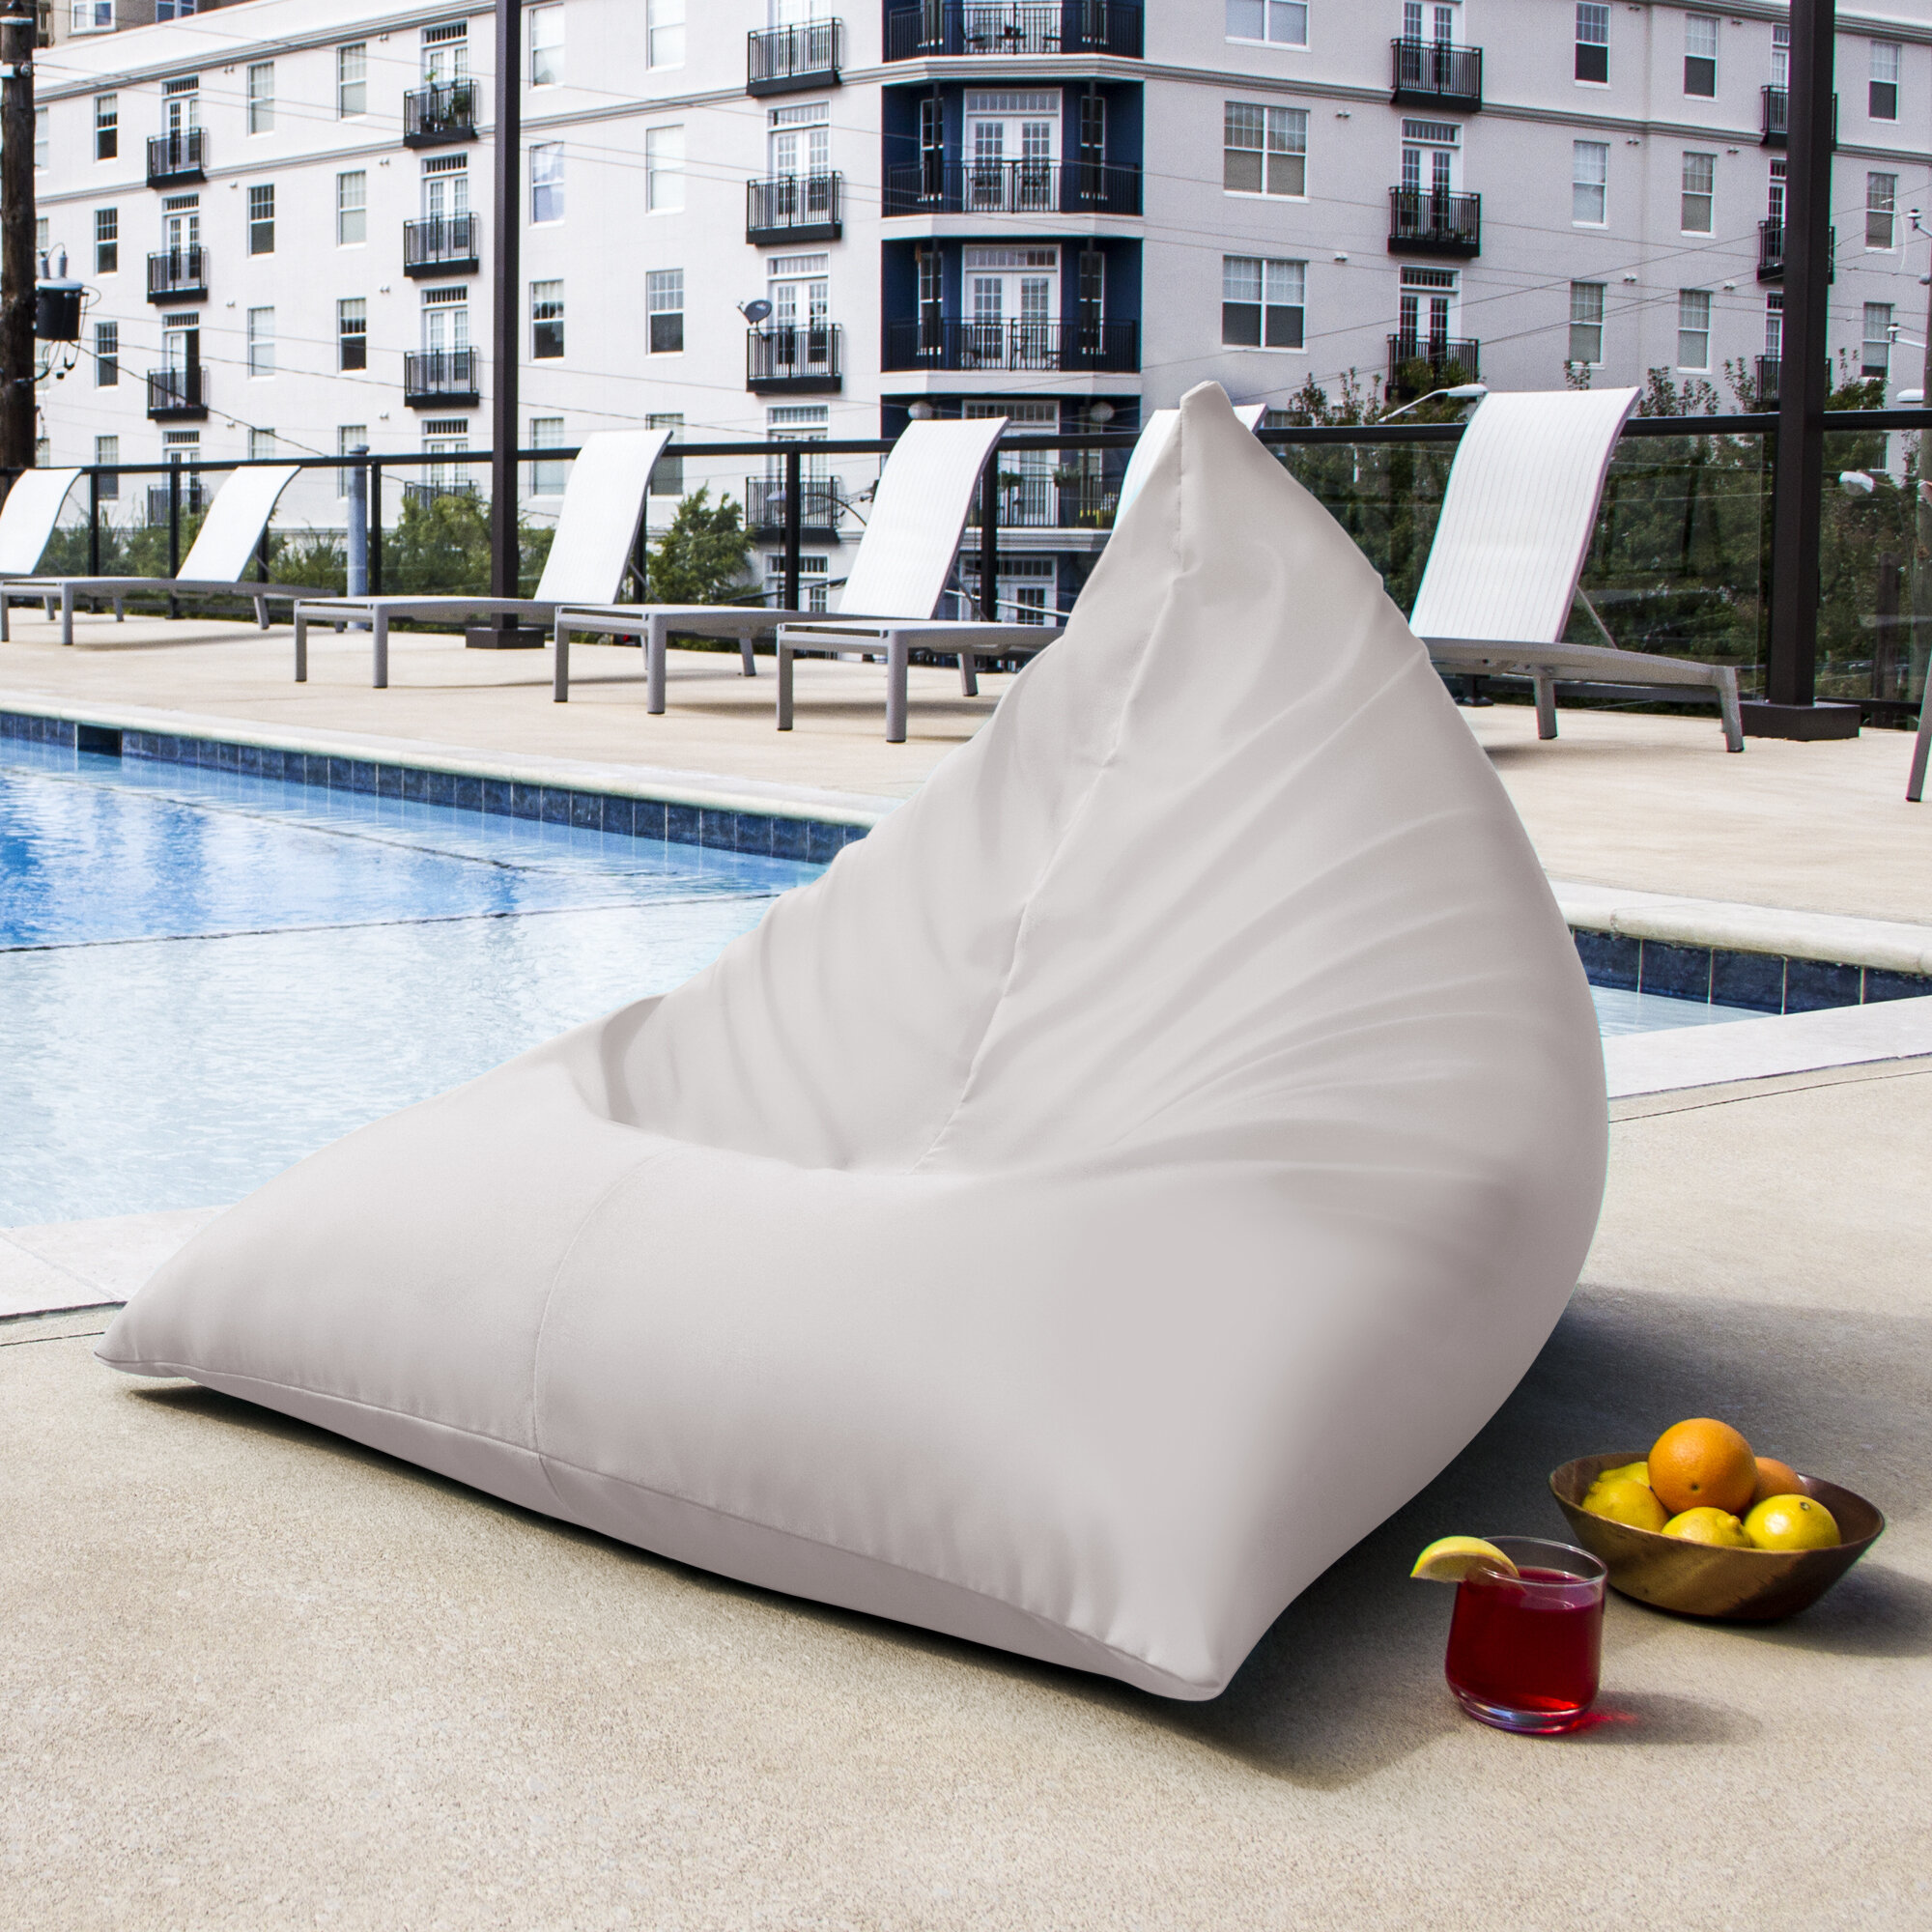 Awe Inspiring Twist Outdoor Bean Bag Chair Caraccident5 Cool Chair Designs And Ideas Caraccident5Info